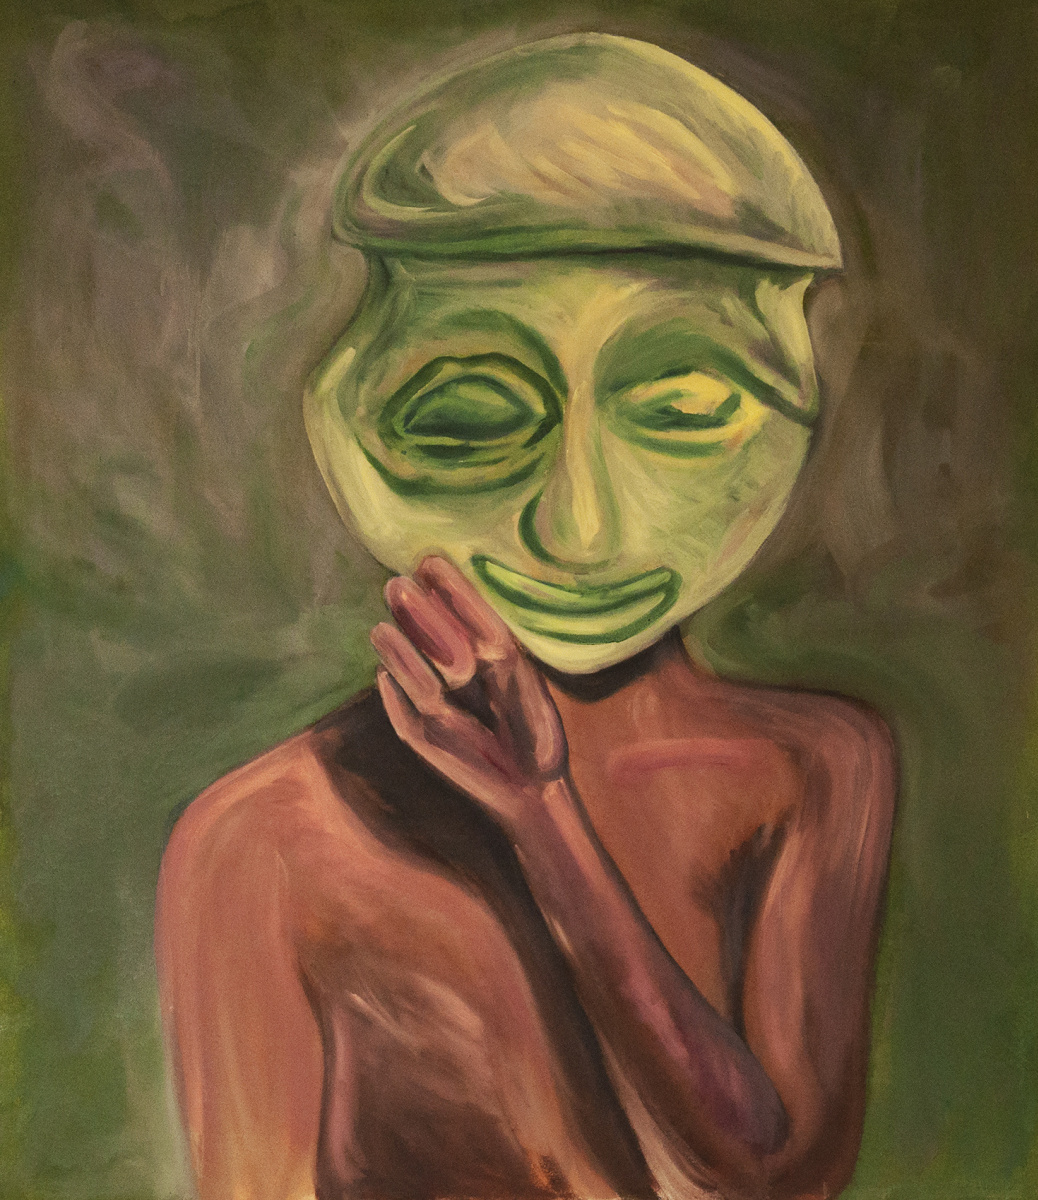 Riya Kacharava. Untitled (Green Mask)